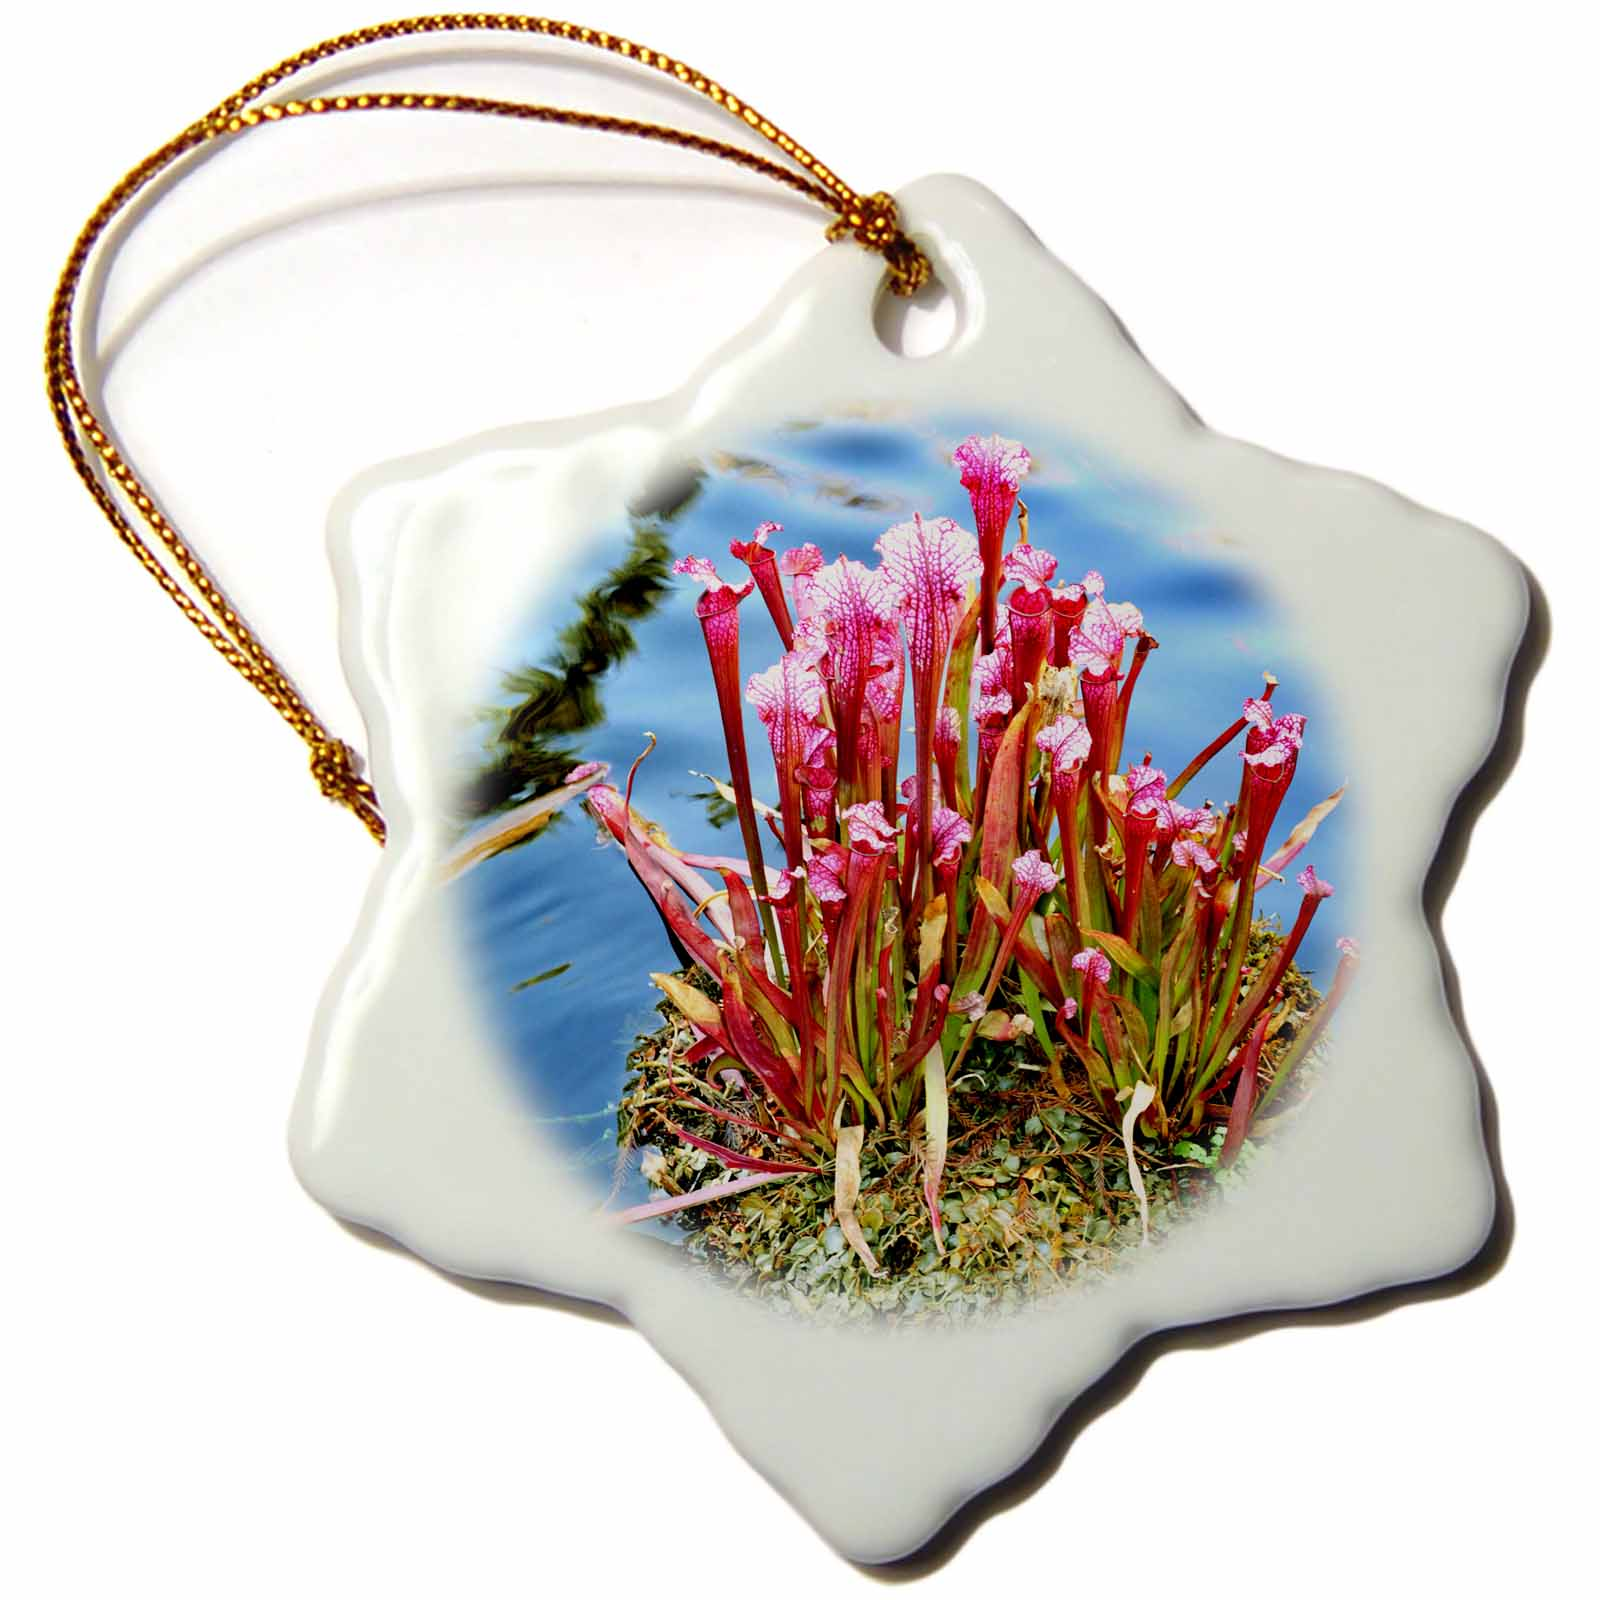 3dRose This is a carnivorous plant that lives in the water, Snowflake Ornament, Porcelain, 3-inch